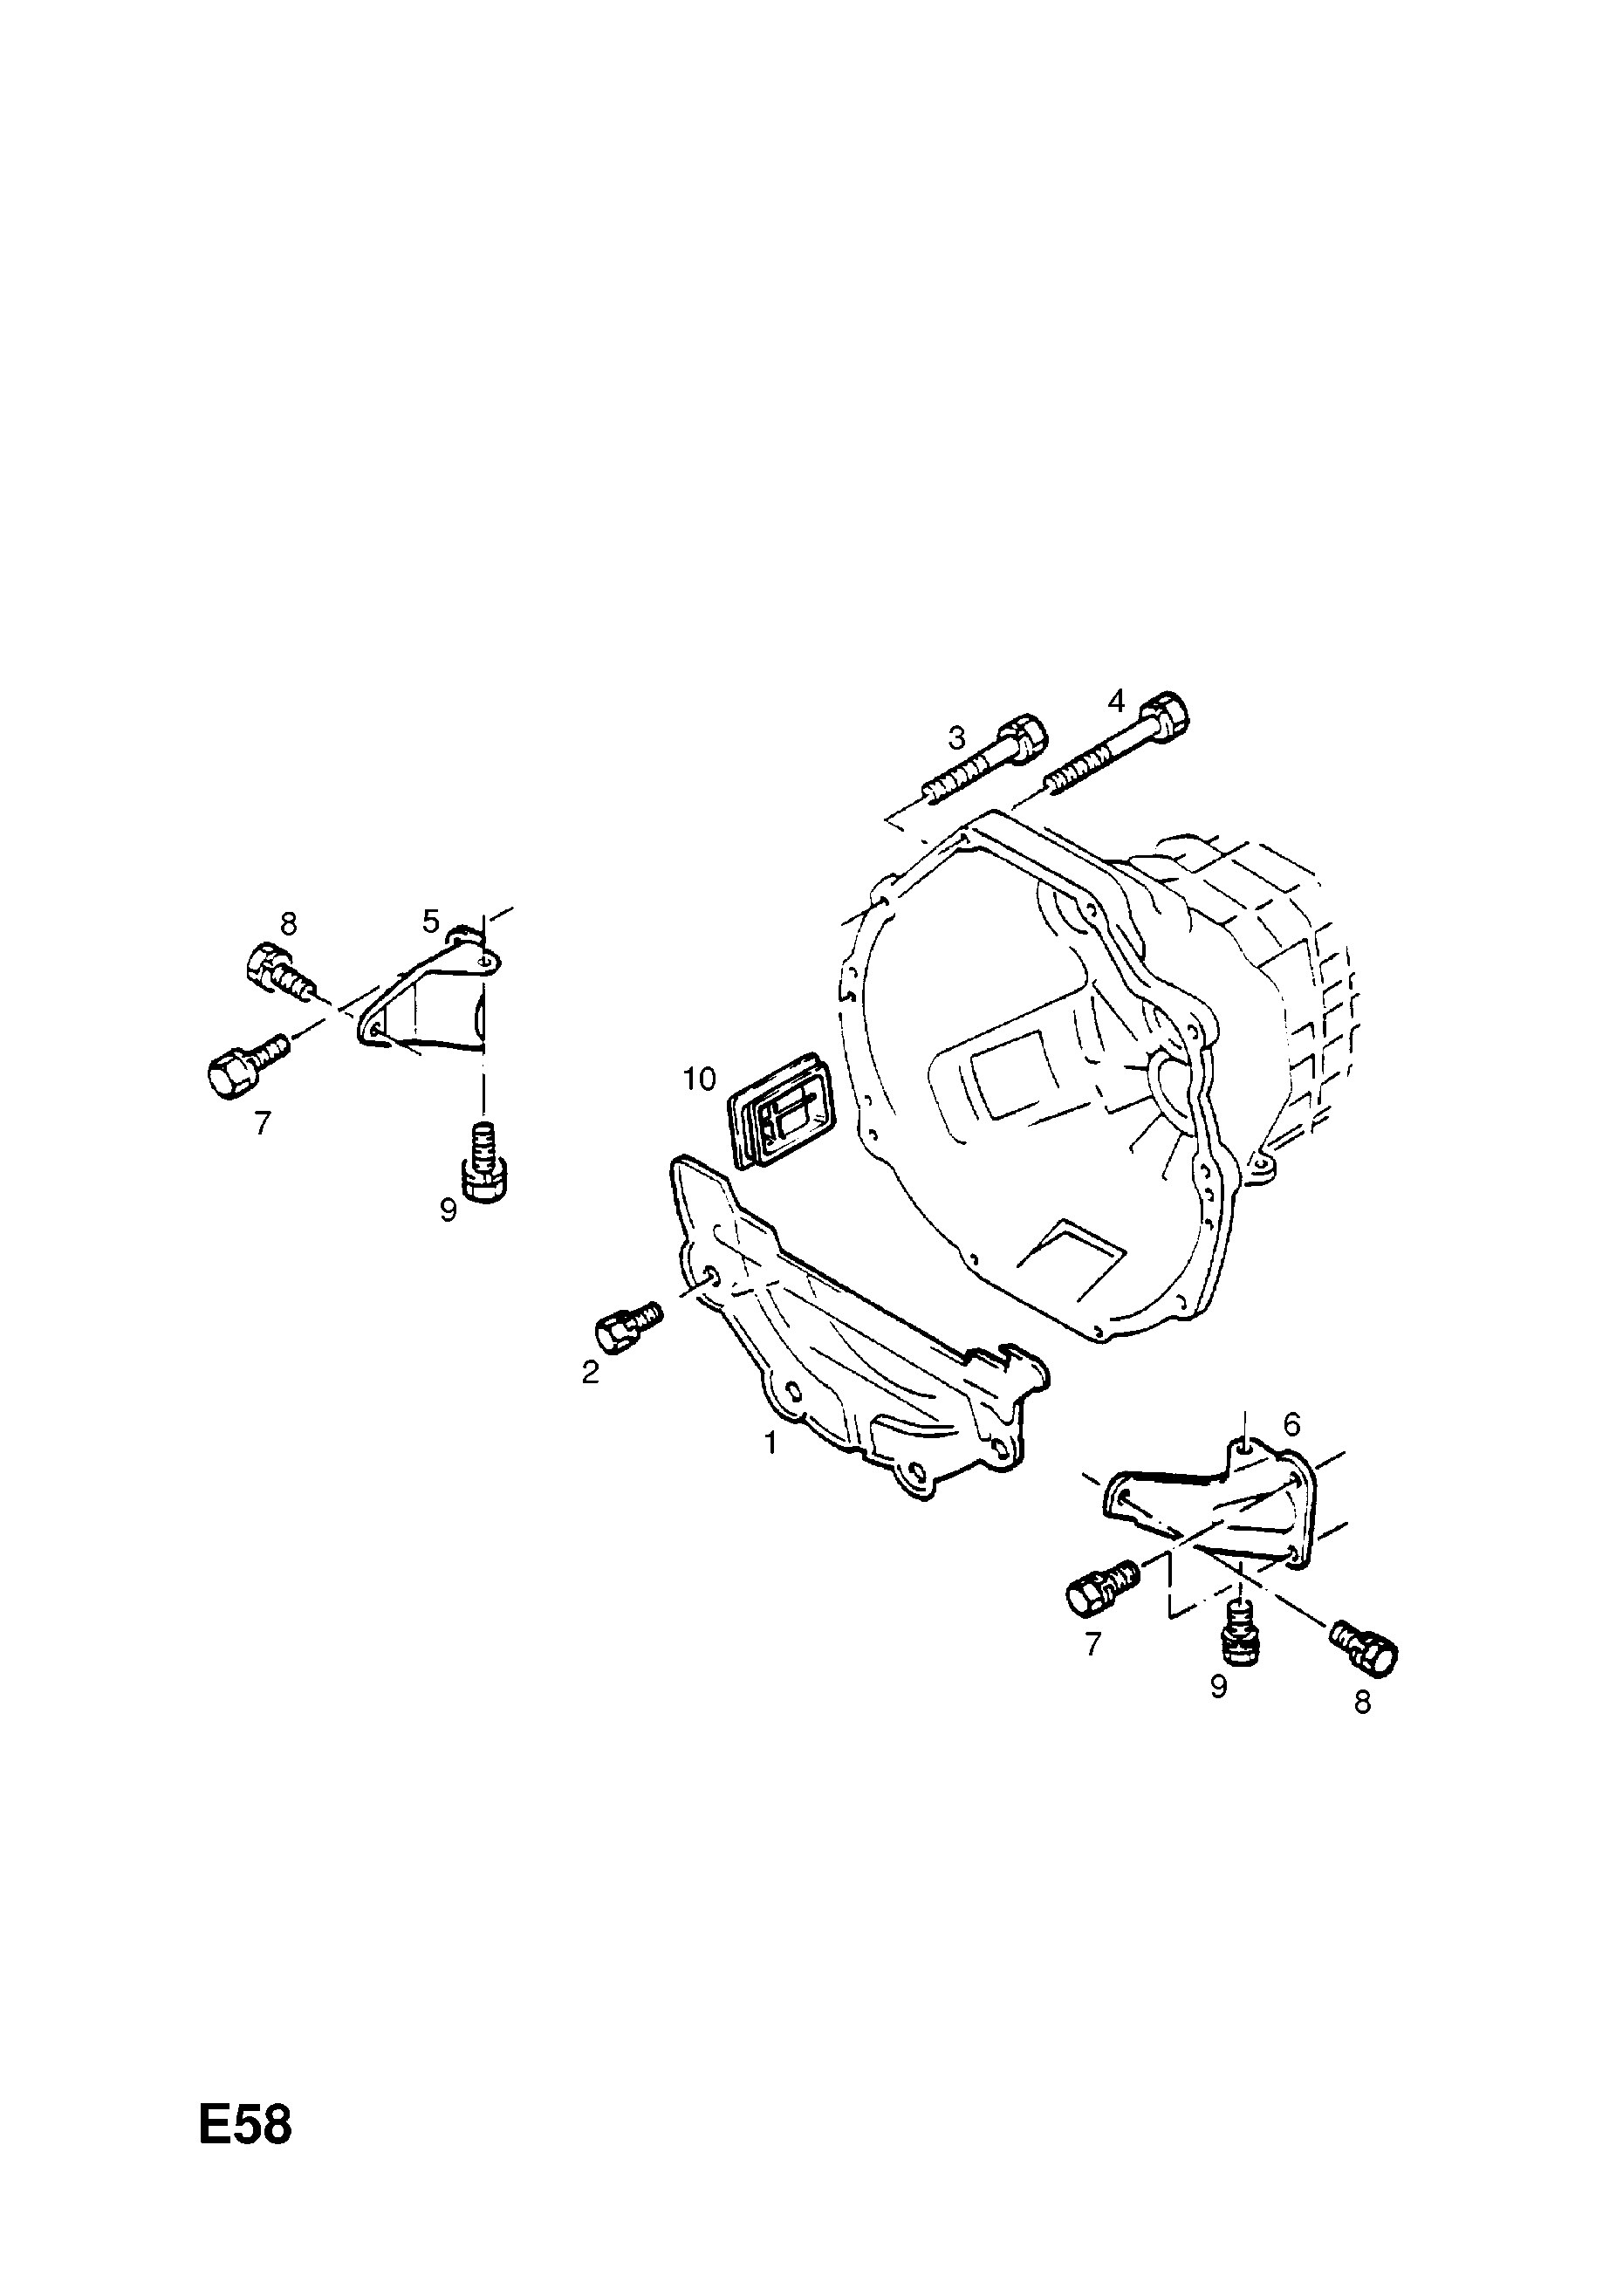 Clutch Housing And Fixings Used With Manual Transmission